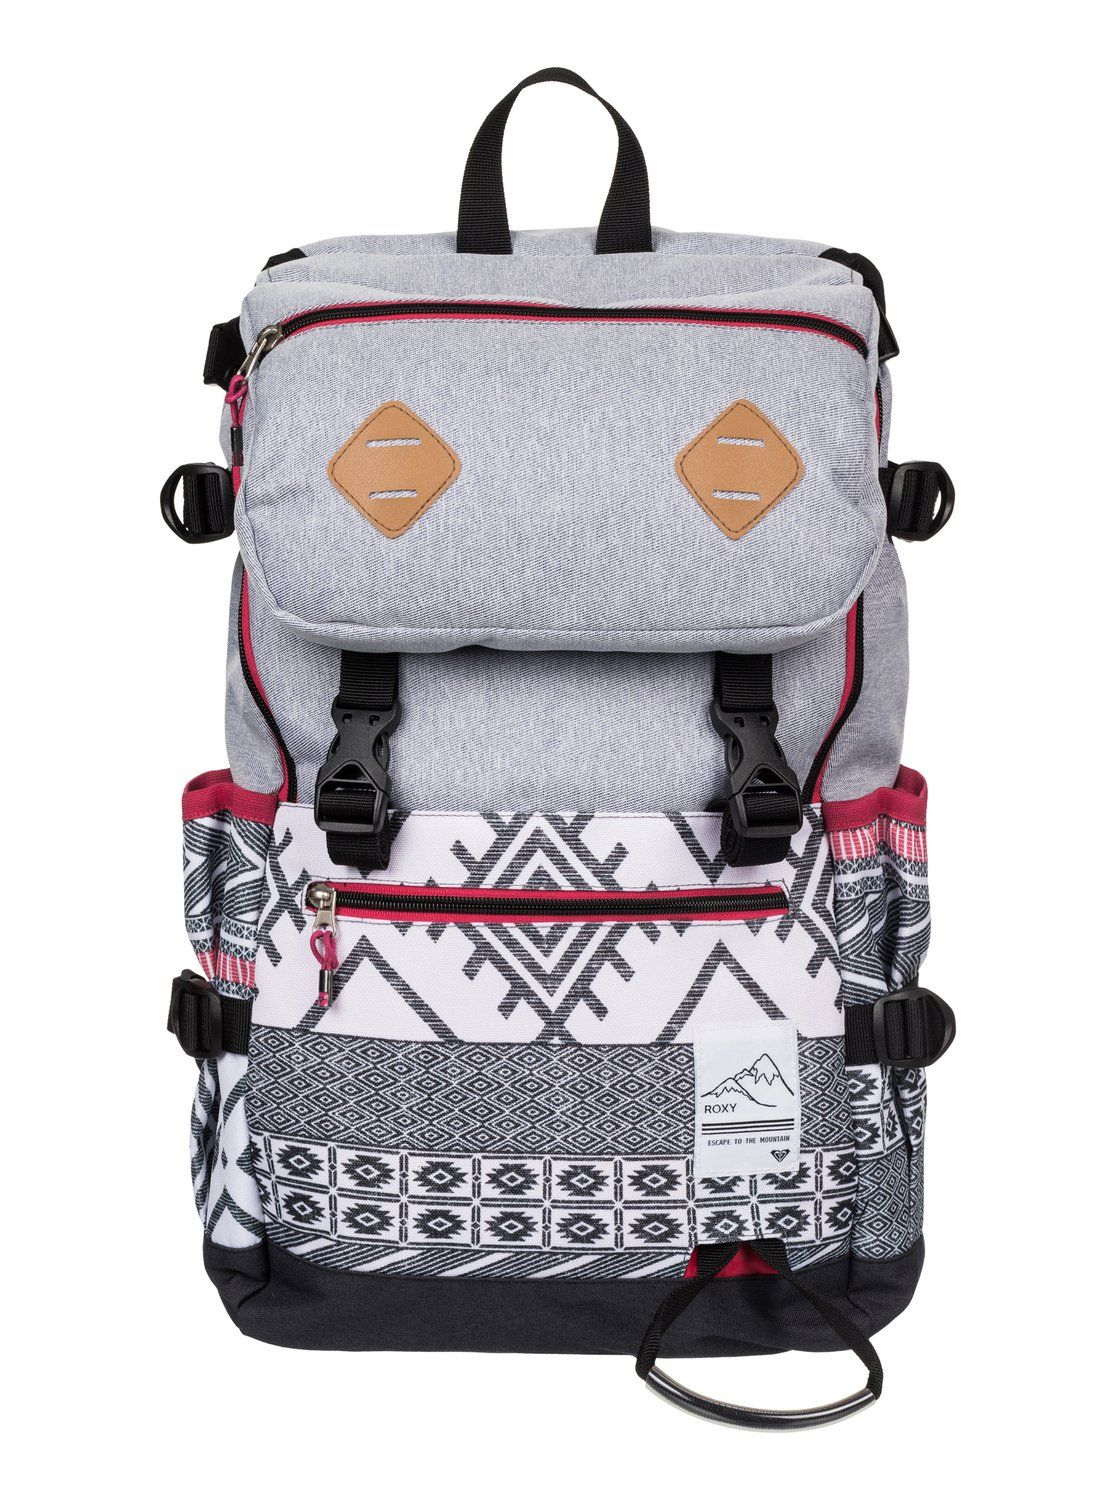 6e97d5e828 Tribute - 20L Snow Backpack in 2019 | mochilas | Roxy backpacks ...